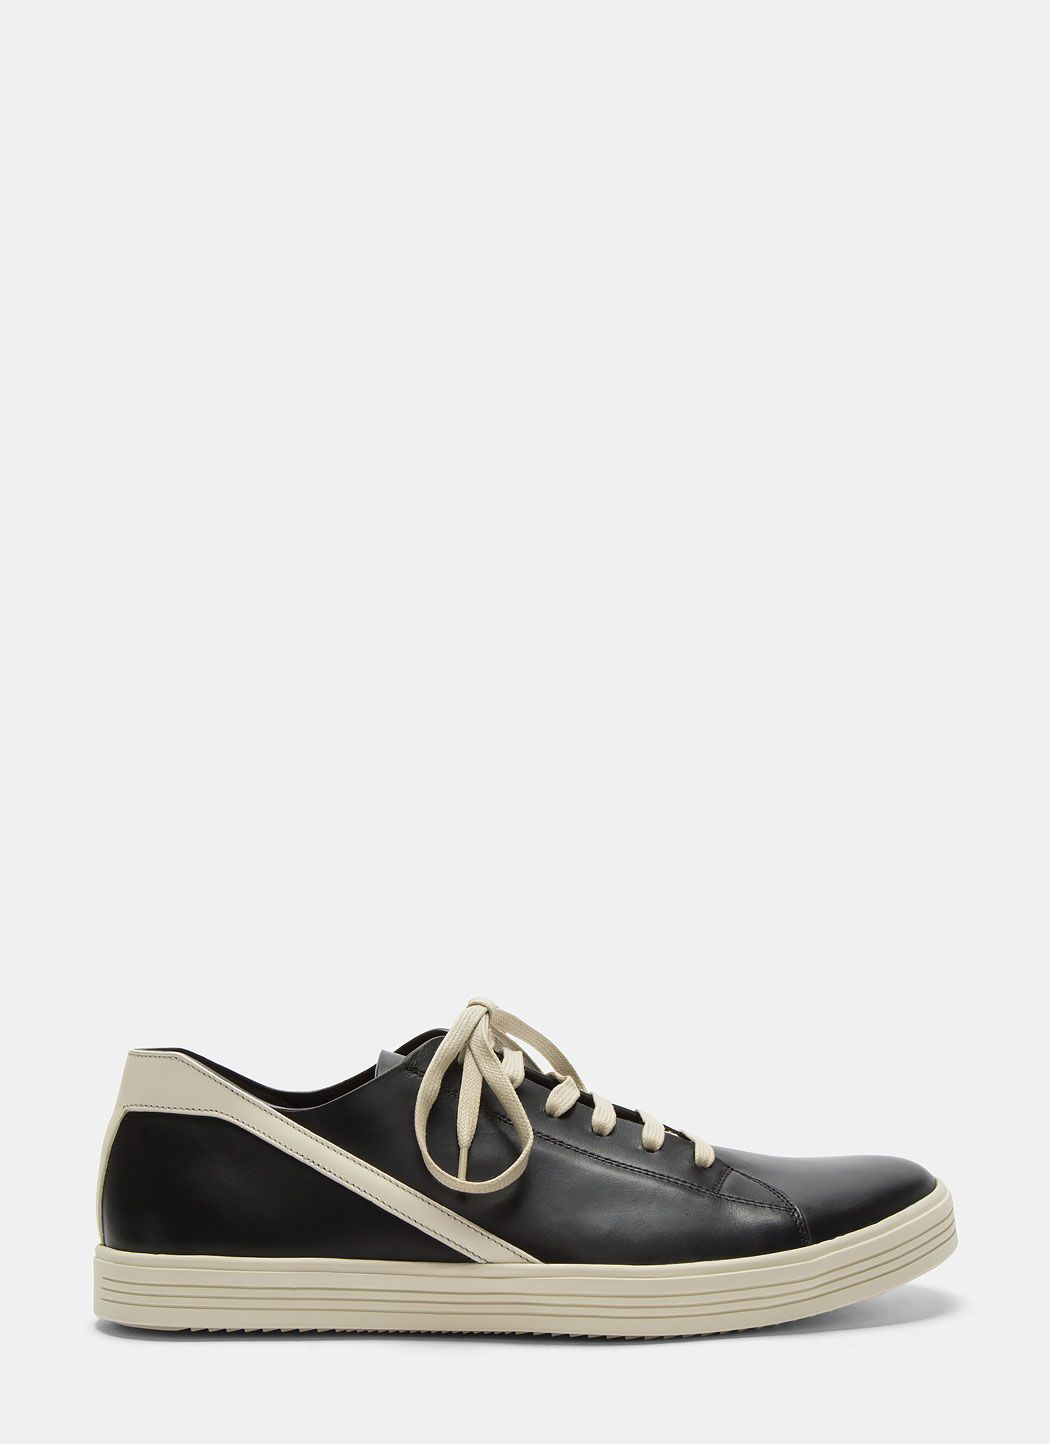 Leather GEOTHRASHER SNEAKS Shoes Spring/summer Rick Owens 2EIck